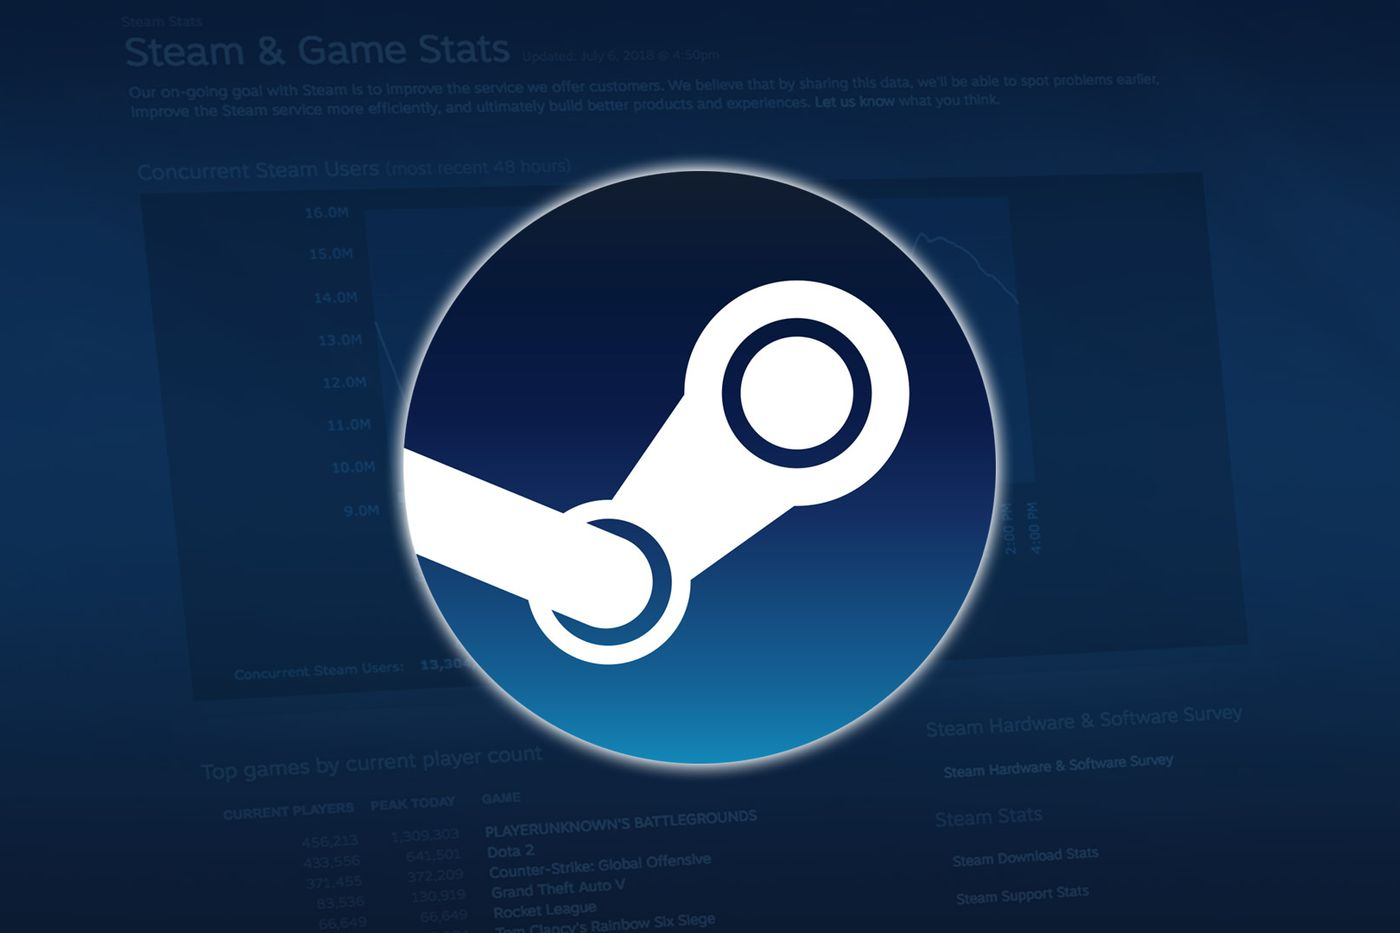 Does Valve deserve Steam's 30 percent cut? Many developers say no